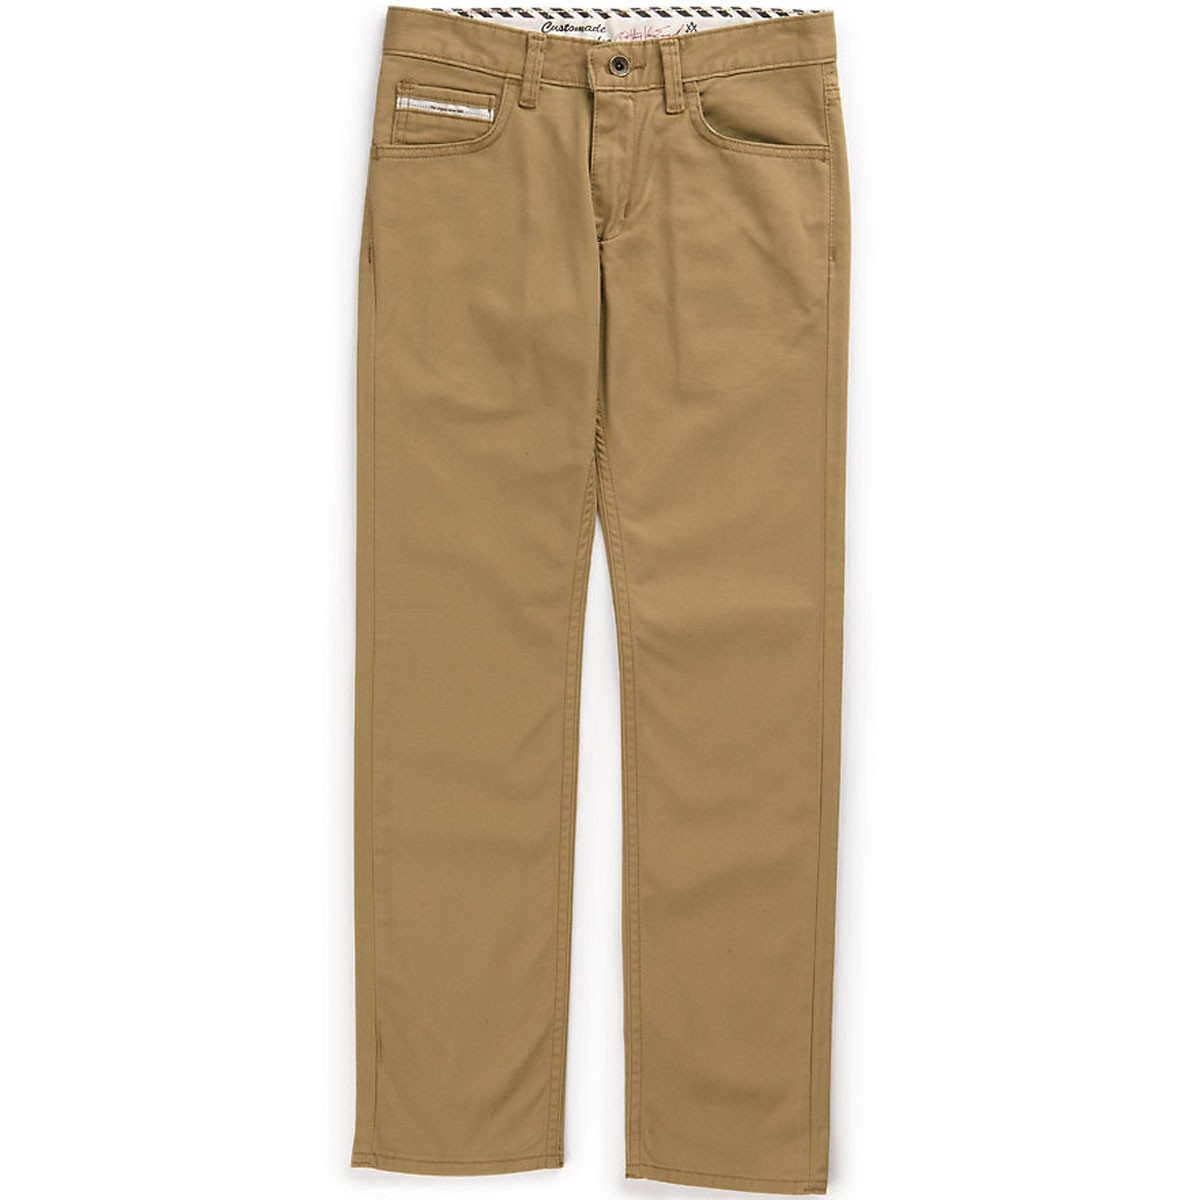 14f59f82f7423e vans-youth-excerpt-chino-pants-new-mushroom-brown 5.1506967515.jpg